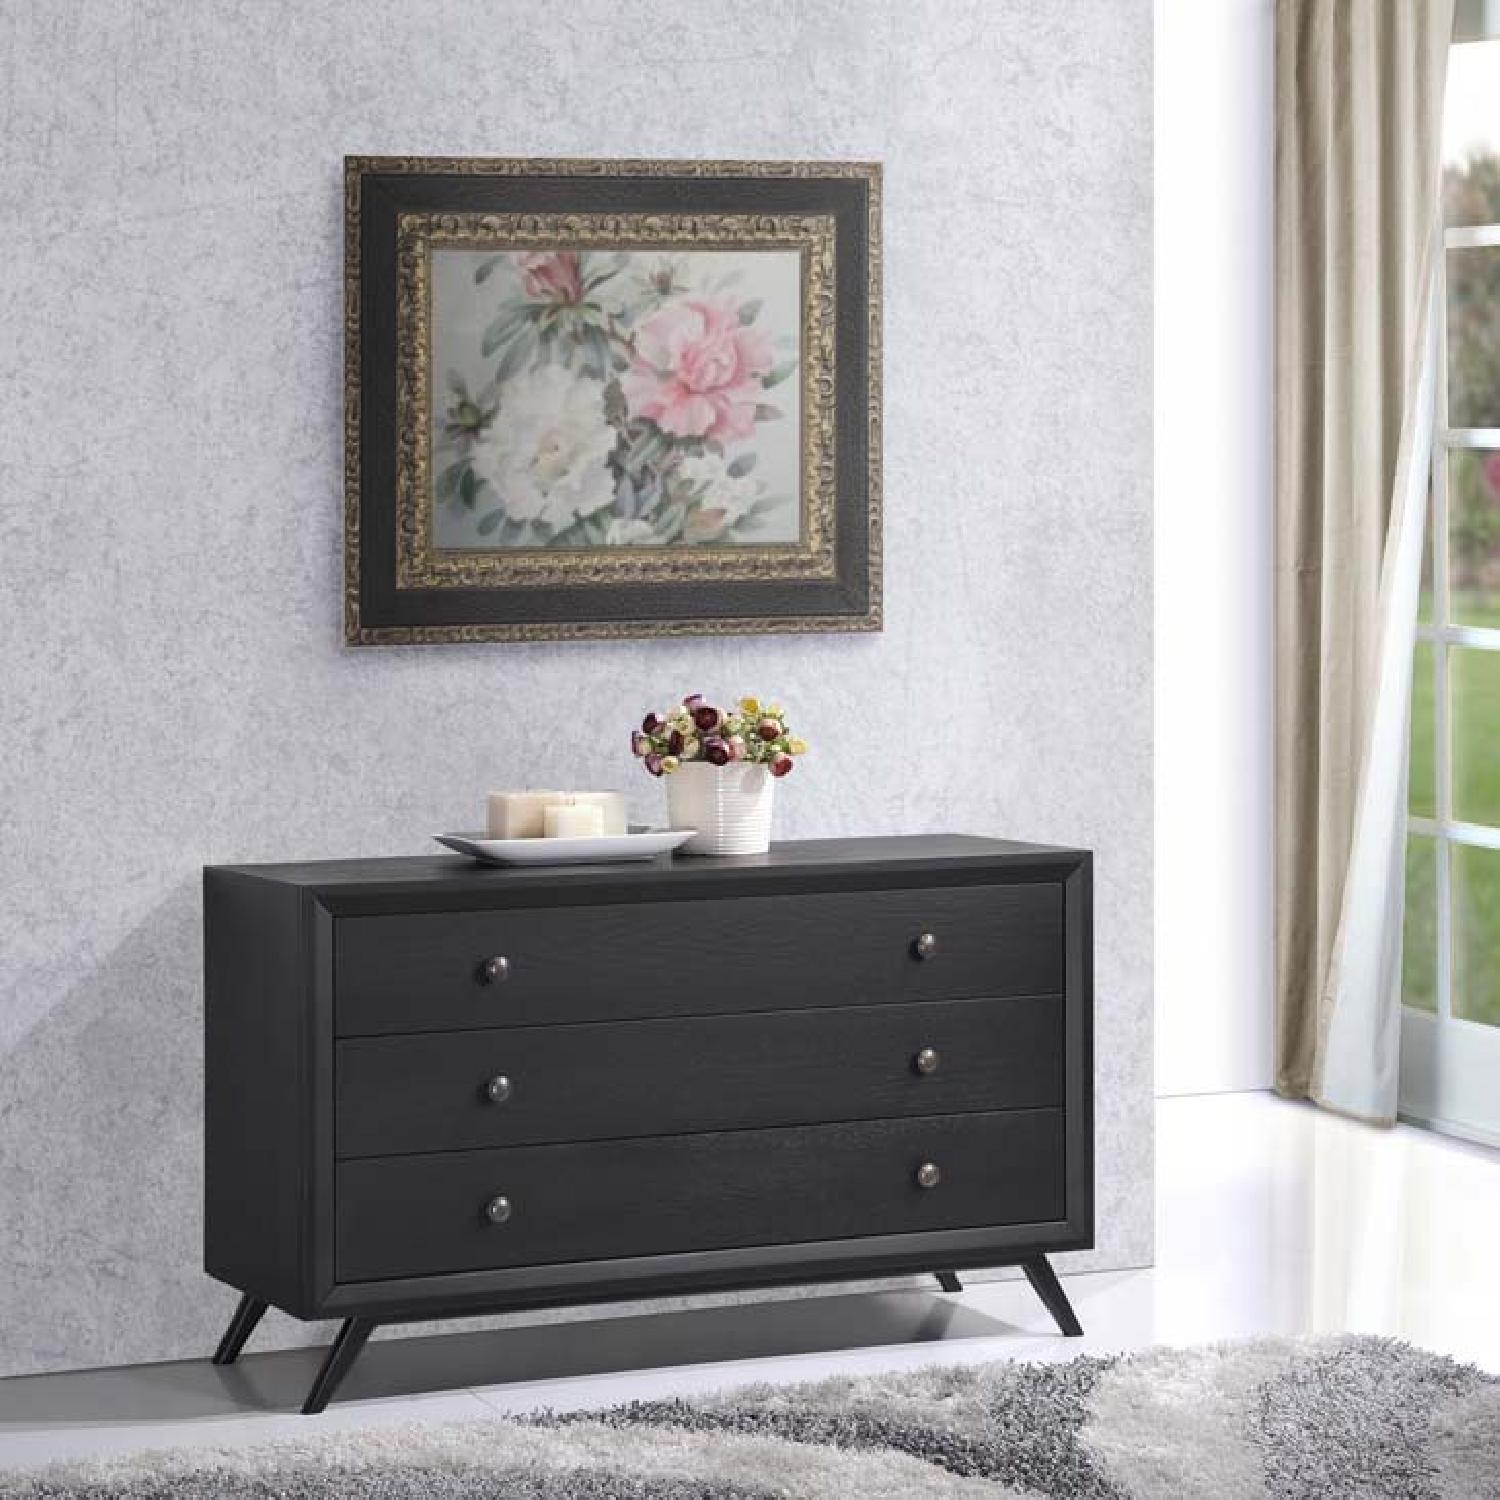 Manhattan Home Design Vintage Wood Dresser in Black-1